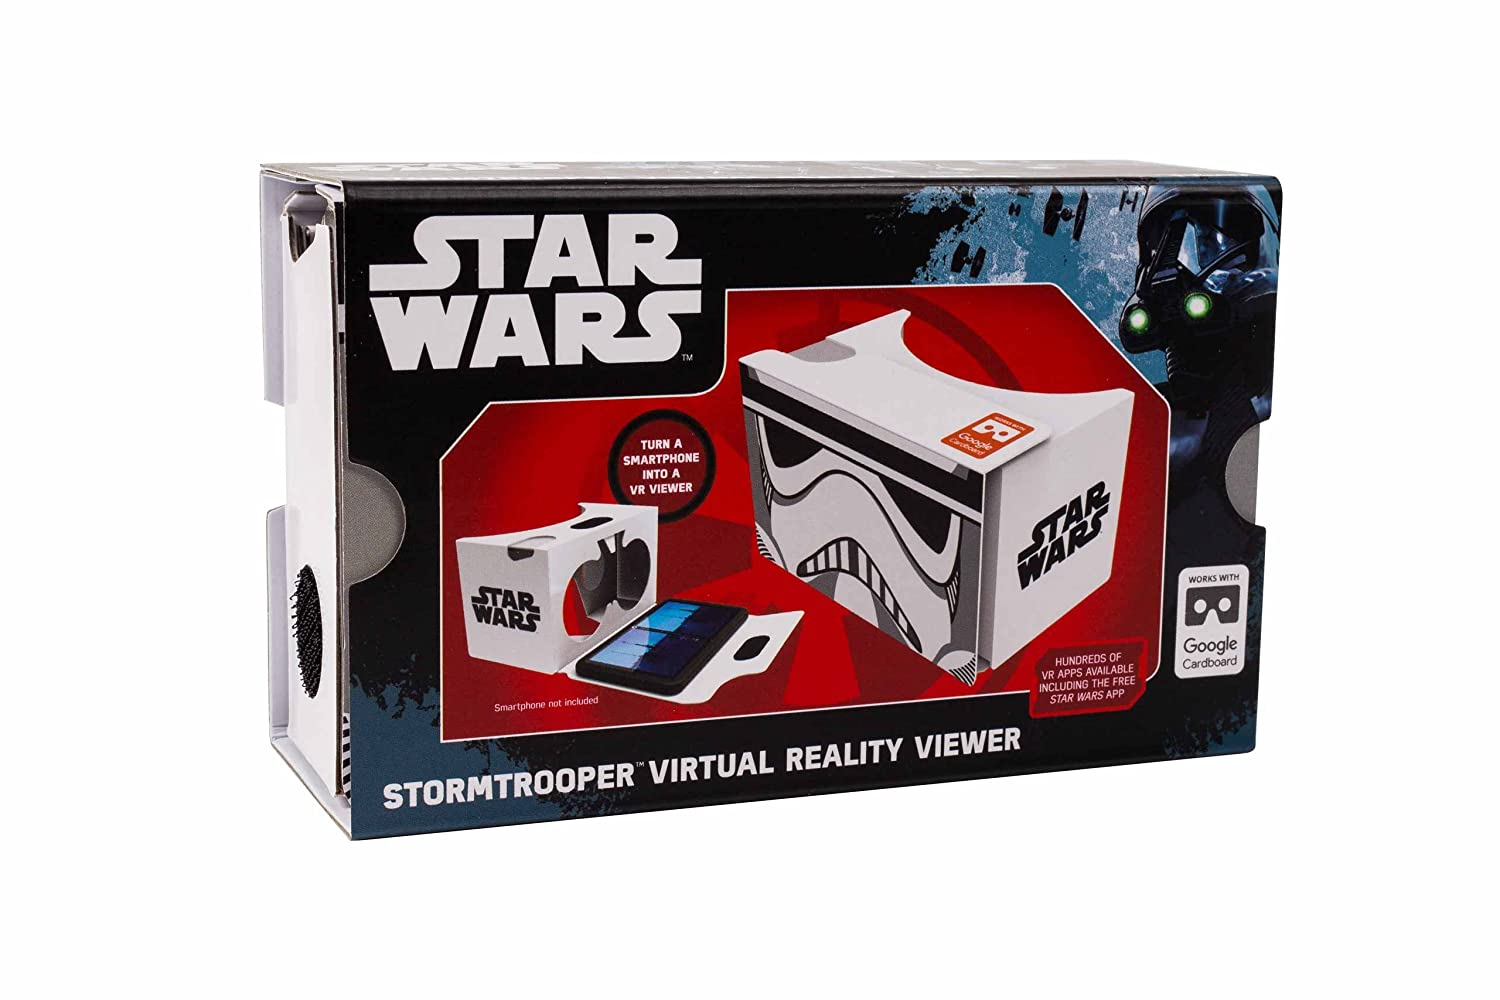 Star Wars Stormtrooper Virtual Reality Viewer